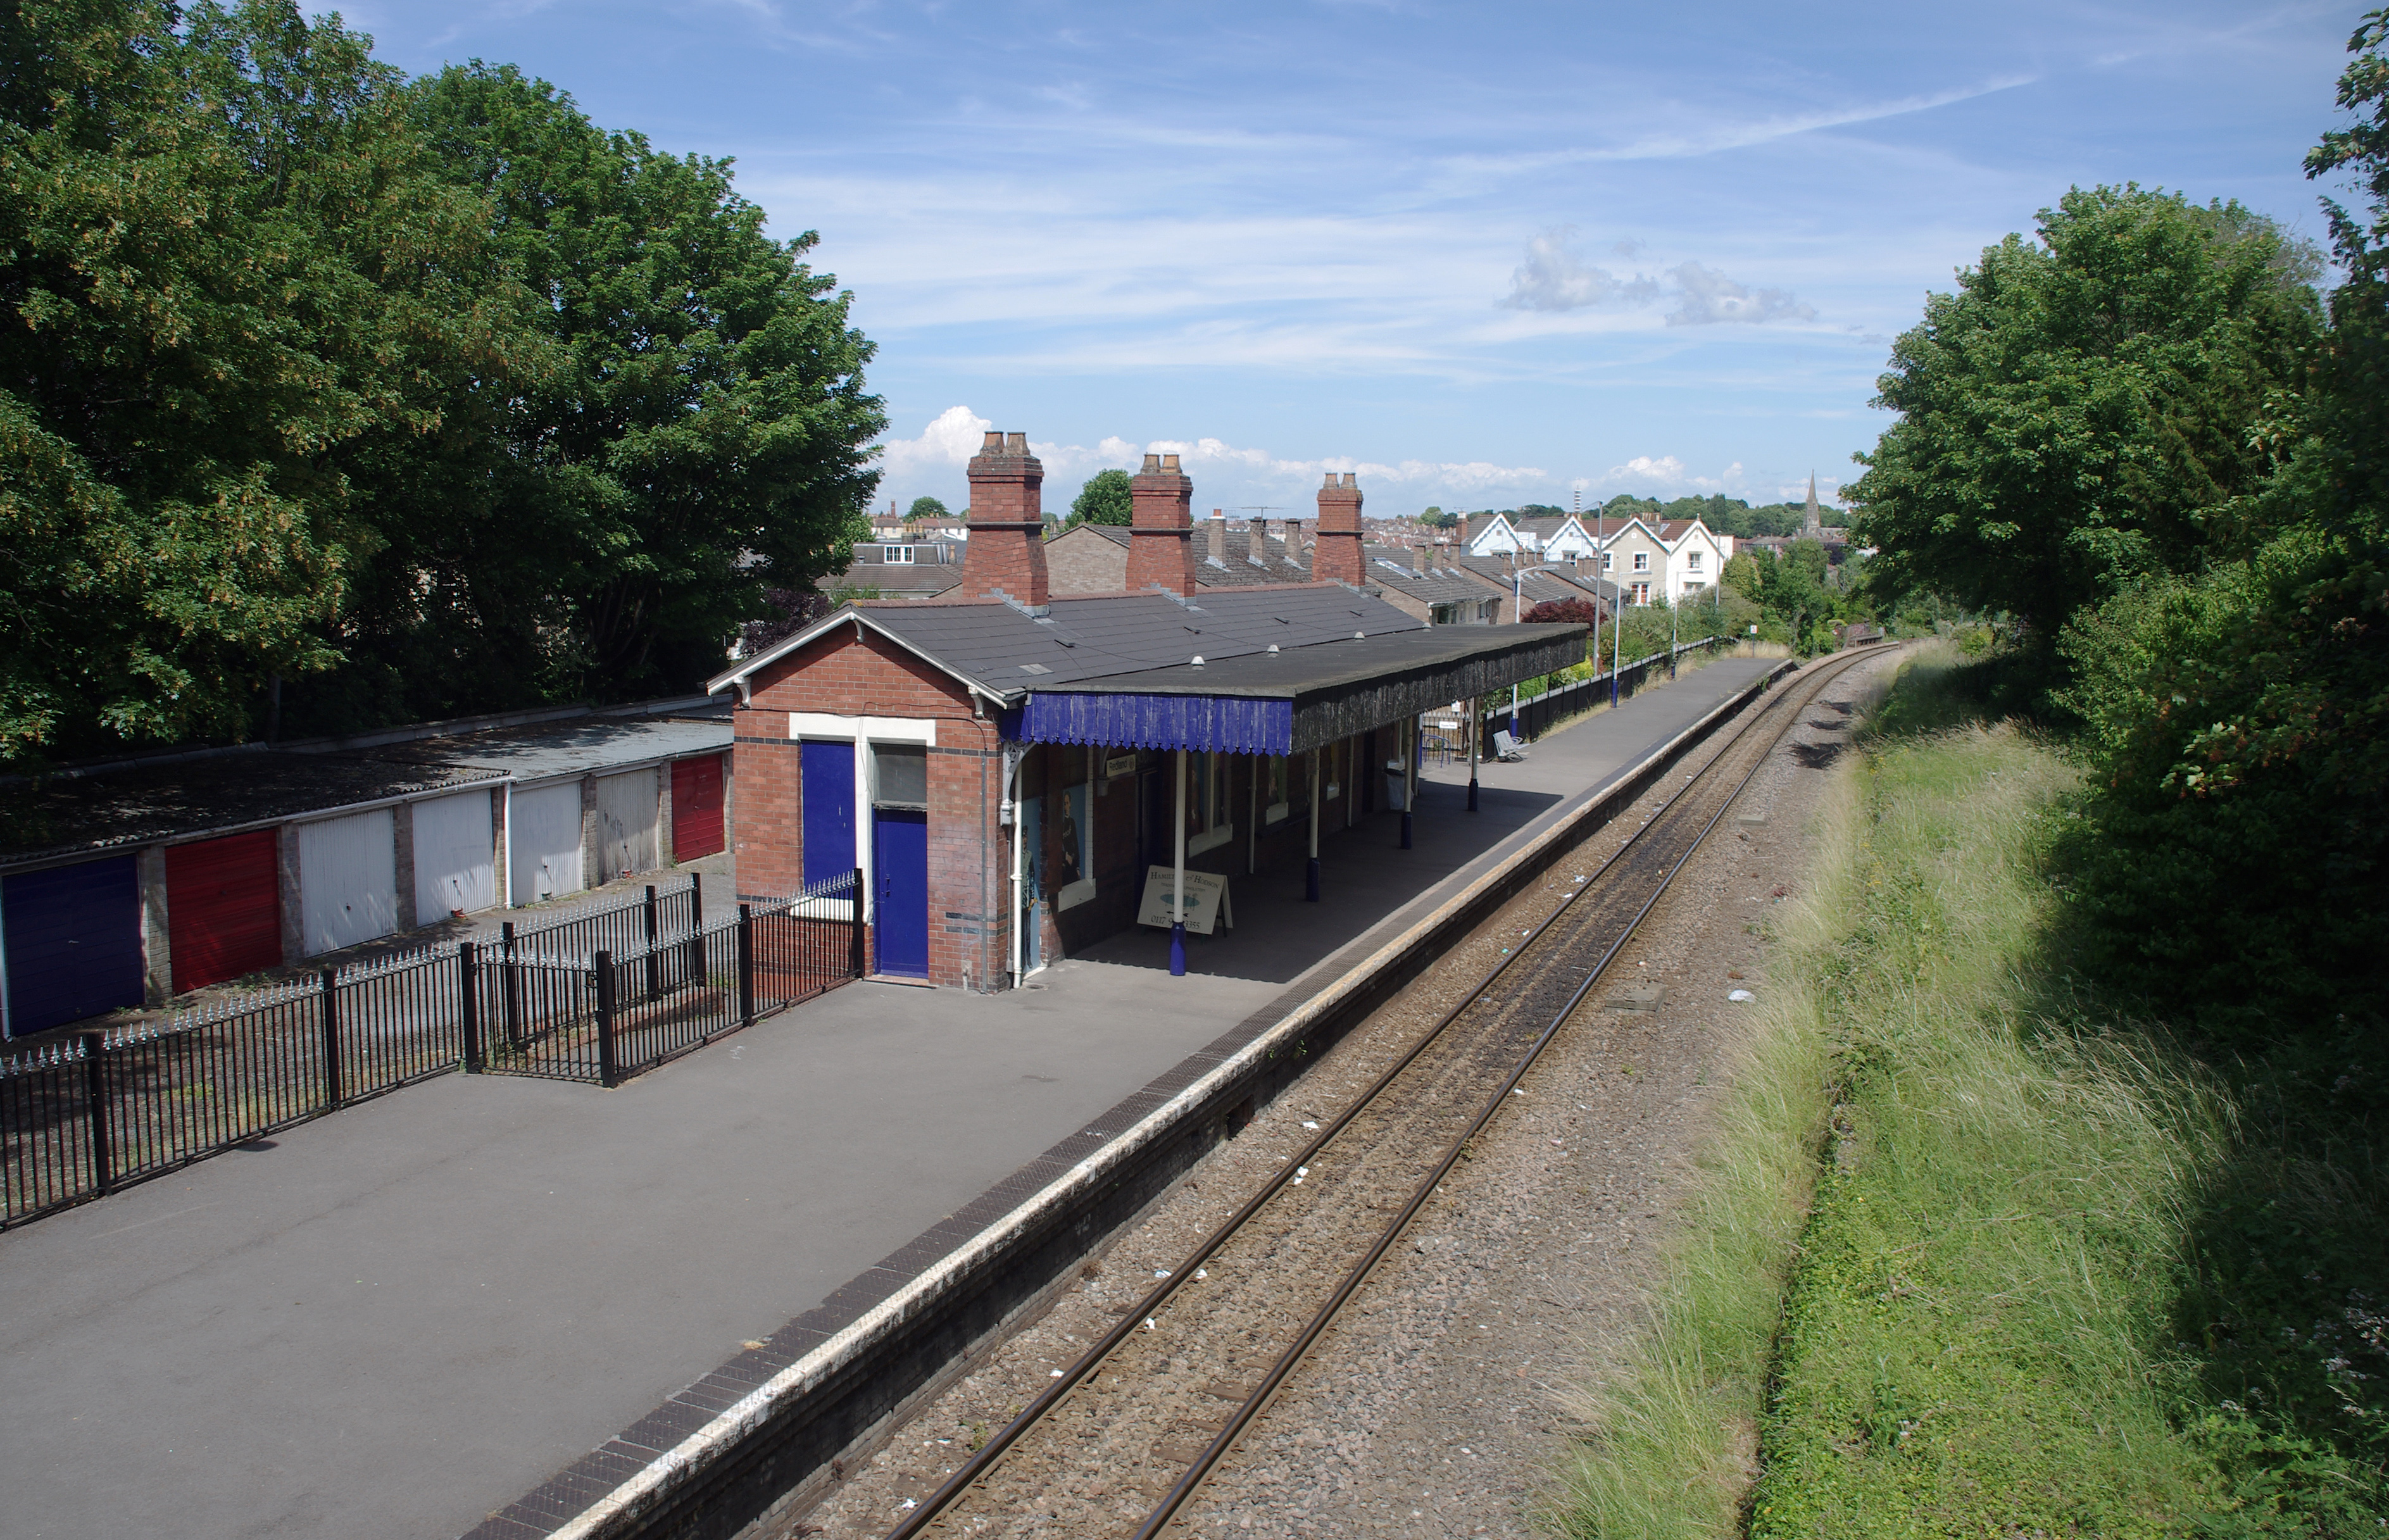 13 Clevedon Railway Station Photo Yatton Line Great Western Railway.